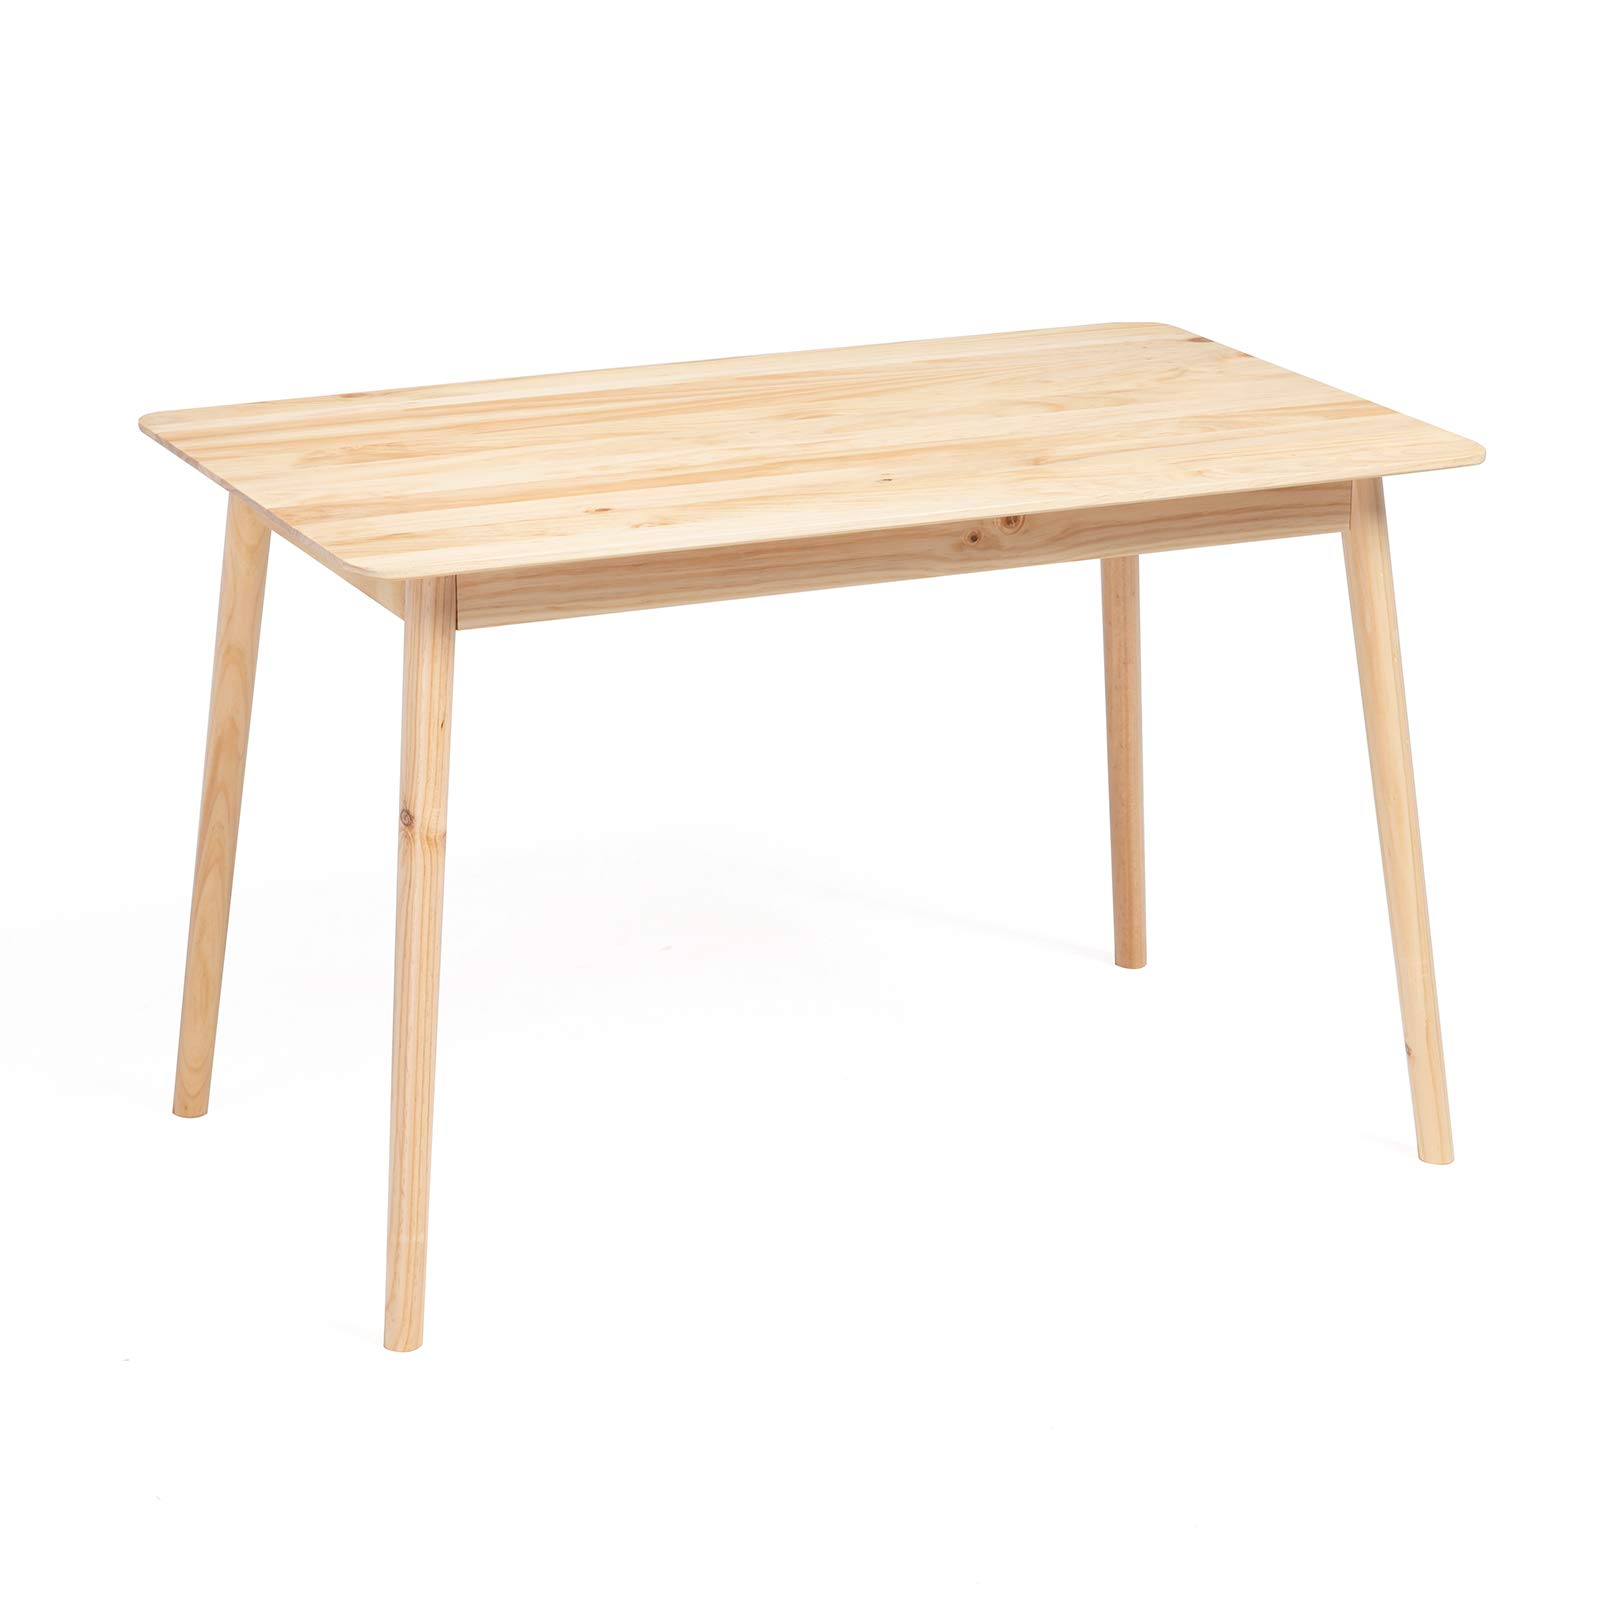 Mecor Wood Dining Table, Mid-Century Home Kitchen Table with Solid Pine Wood 47inch for 4/6 Persons, Natural by mecor